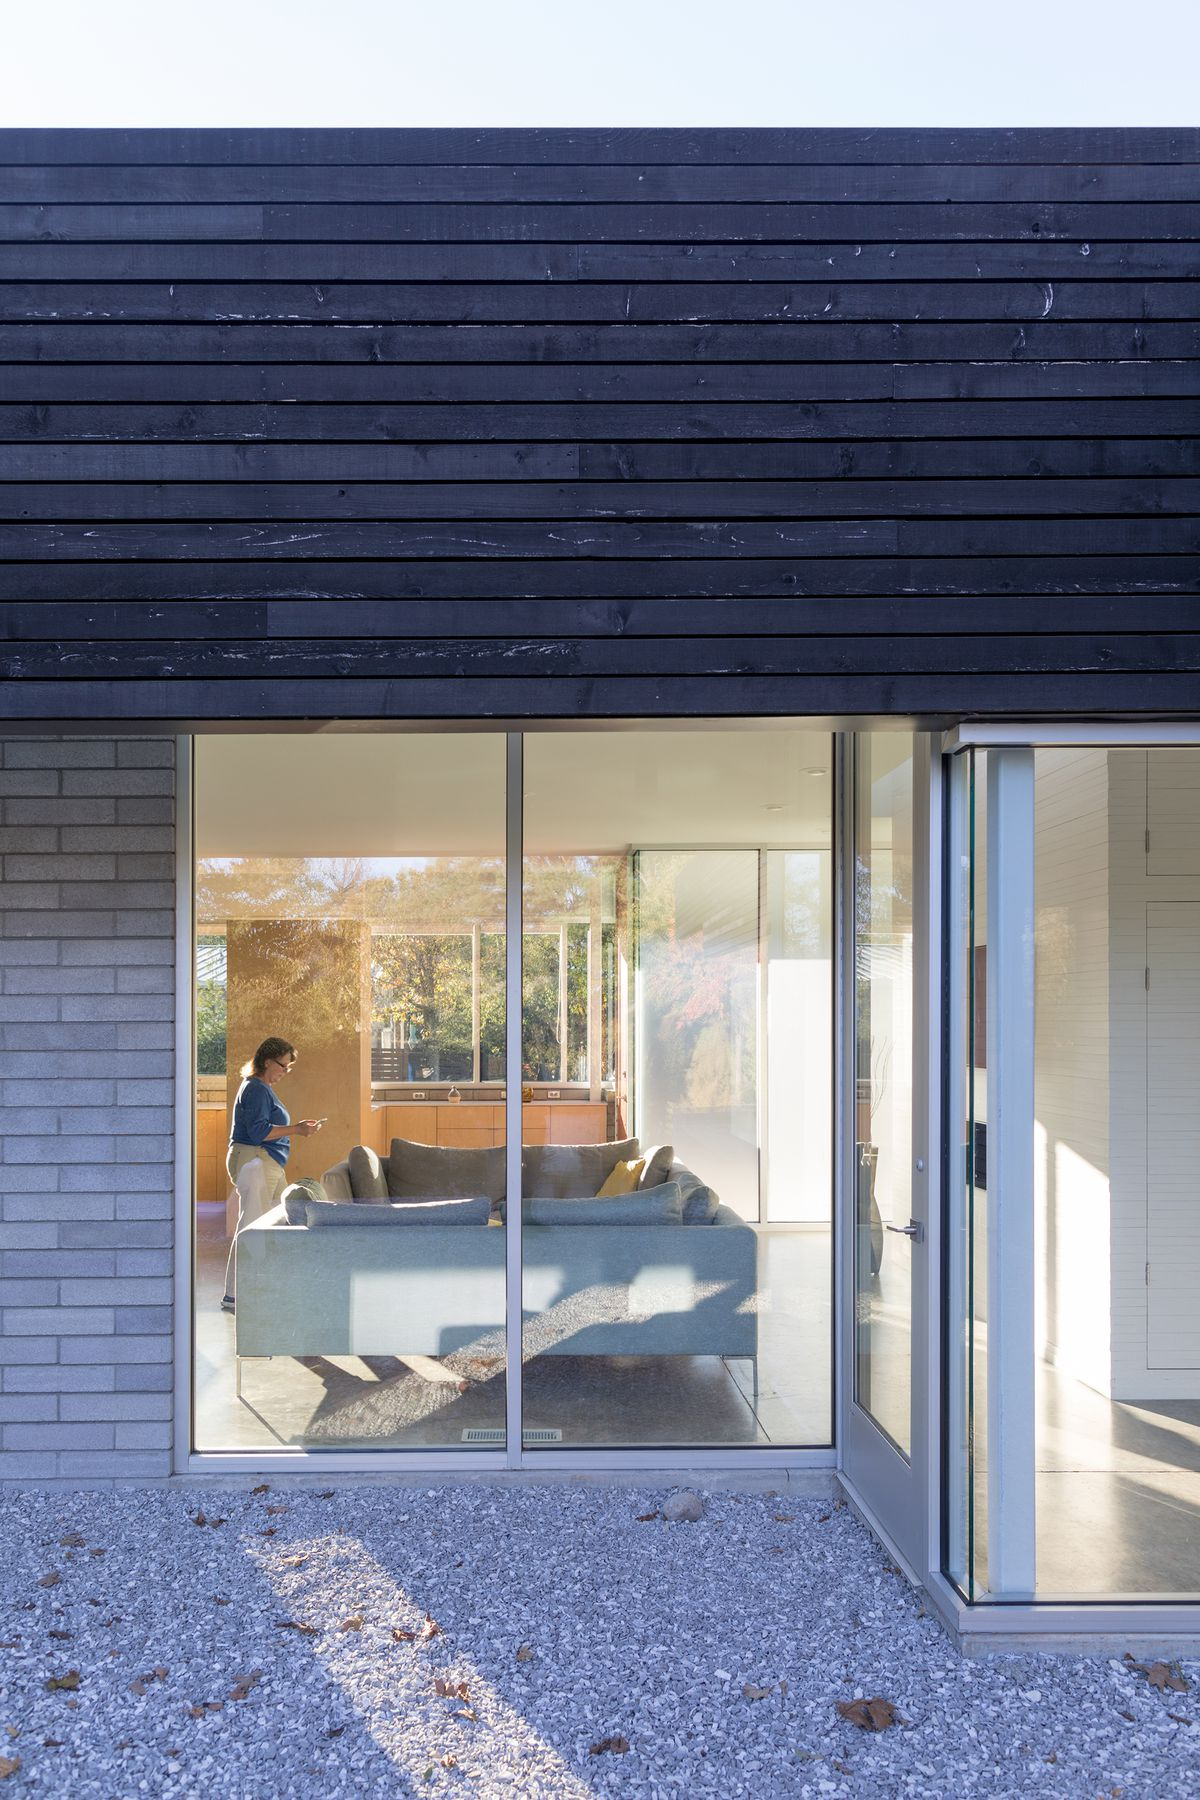 From the outside, you can look through the house thanks to large, glass windows and doors.